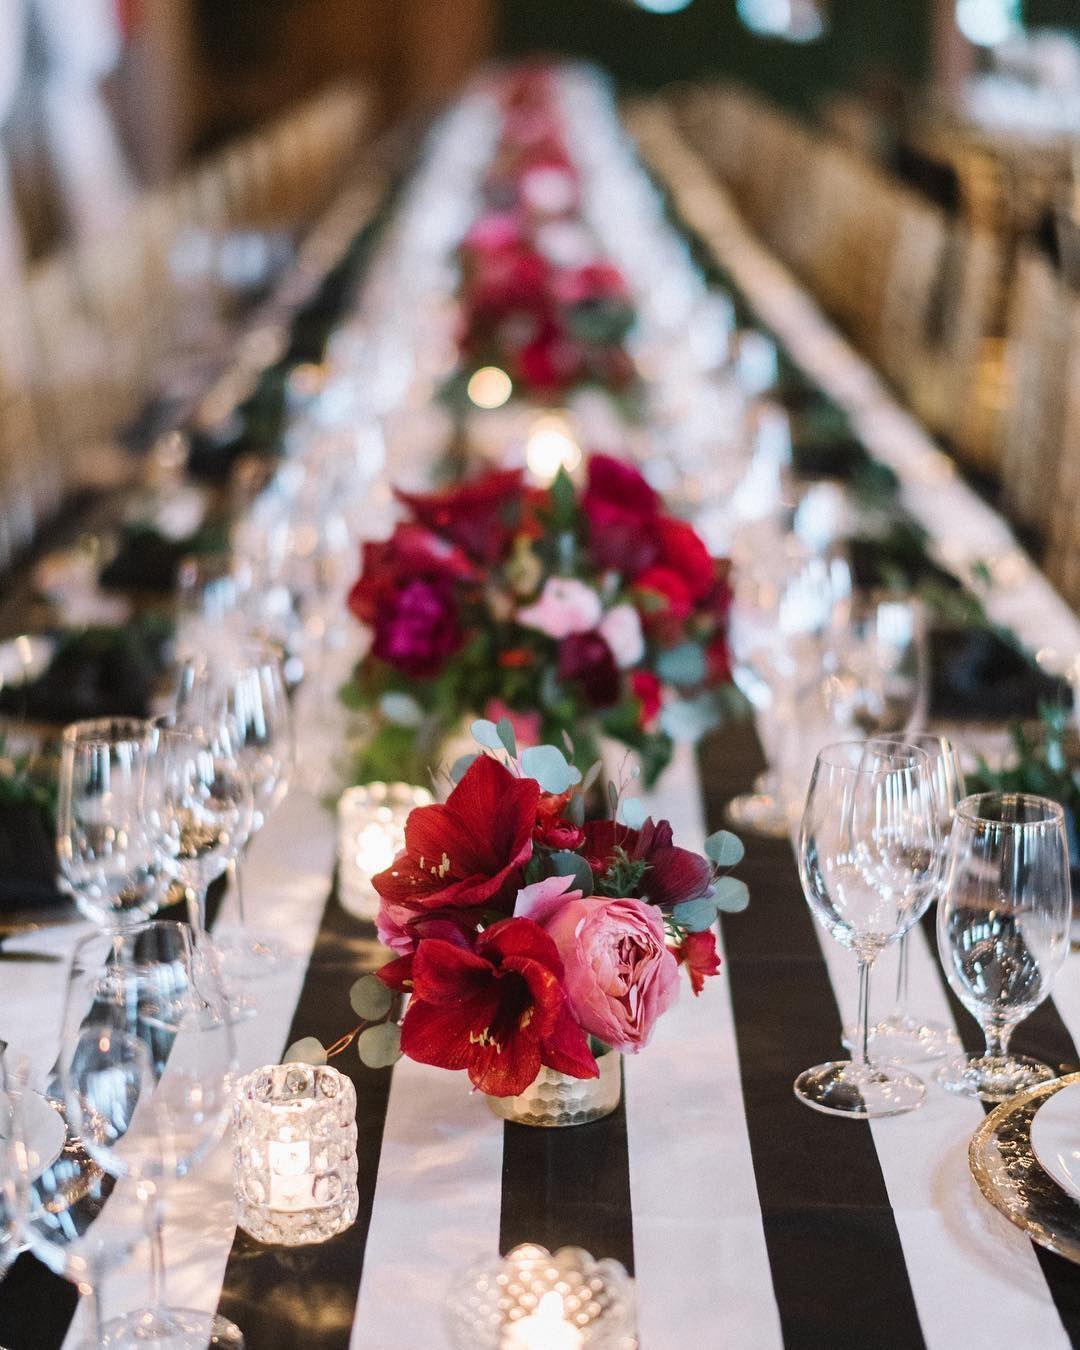 45 Ways To Dress Up Your Wedding Reception Tables - wedding table ,wedding decorations #weddingtable